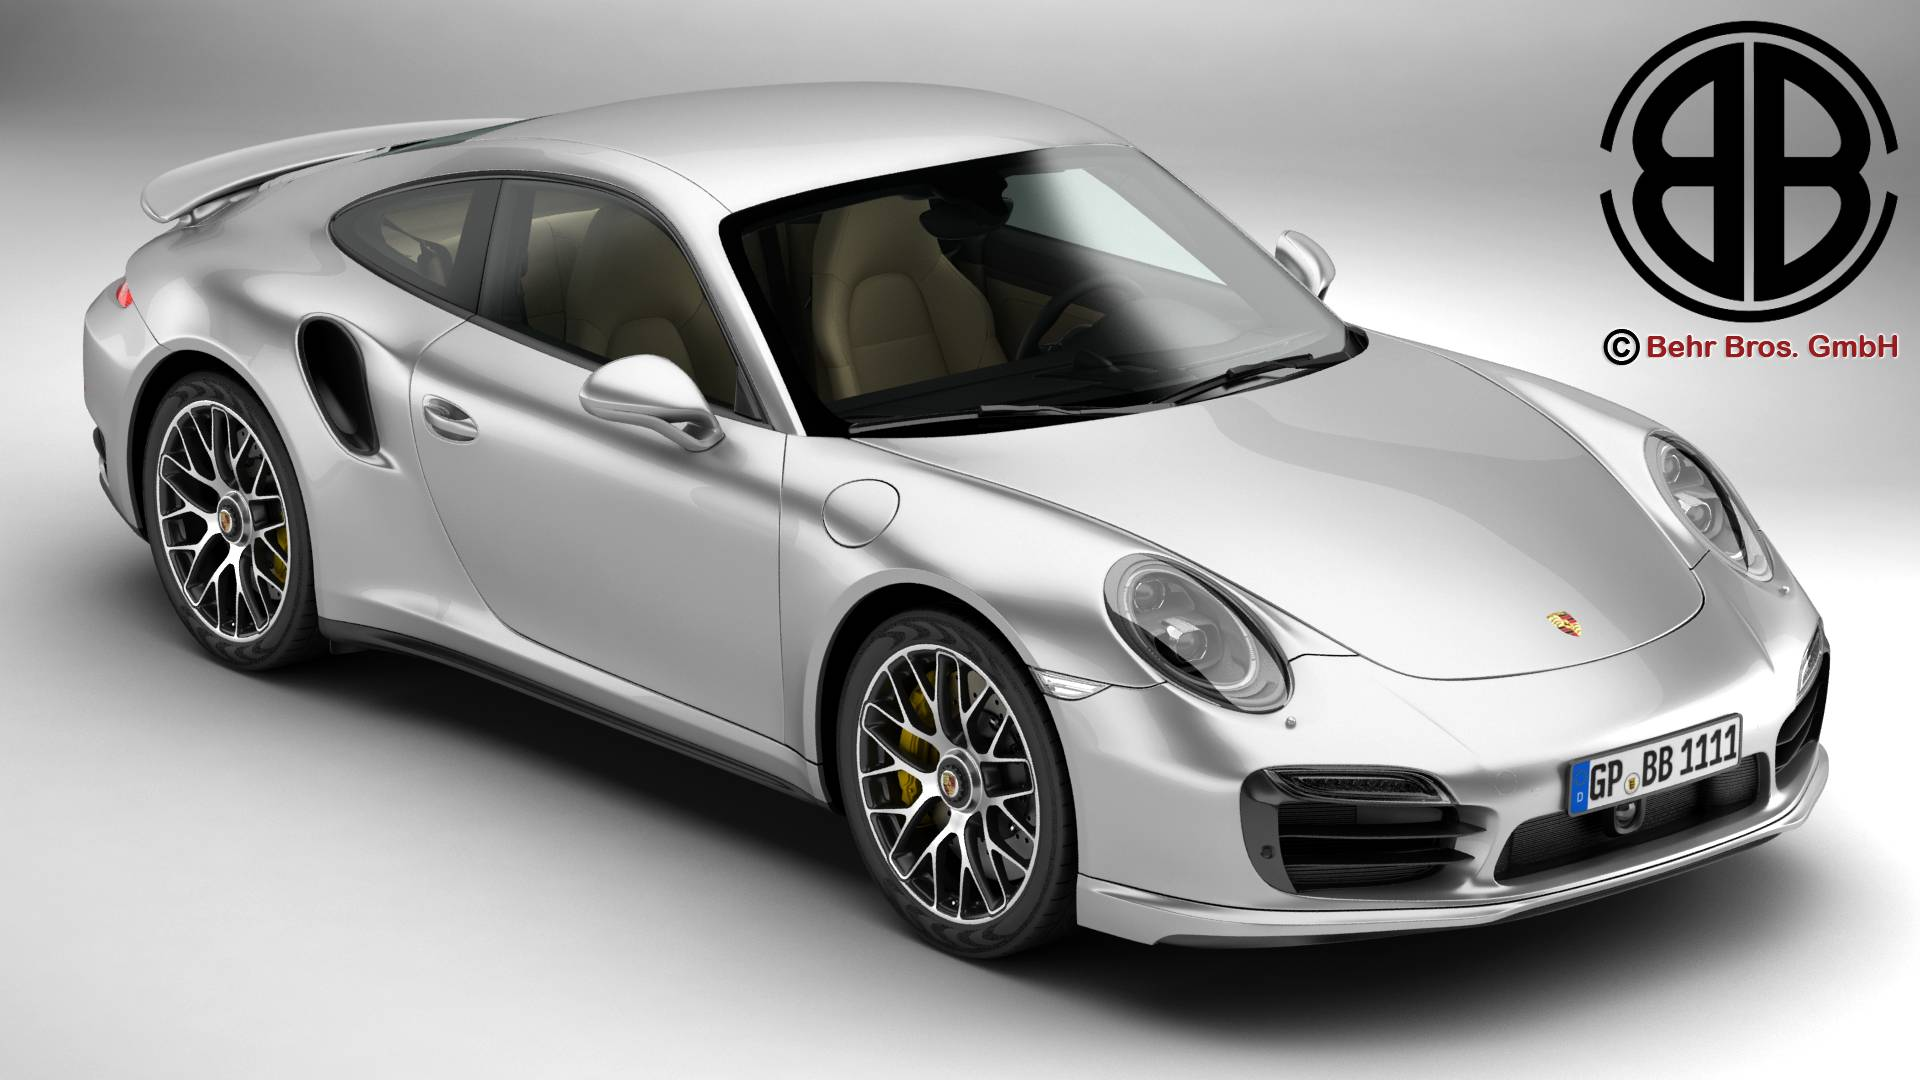 porsche 911 turbo s 2014 3d model 3ds max fbx c4d lwo ma mb obj 212475